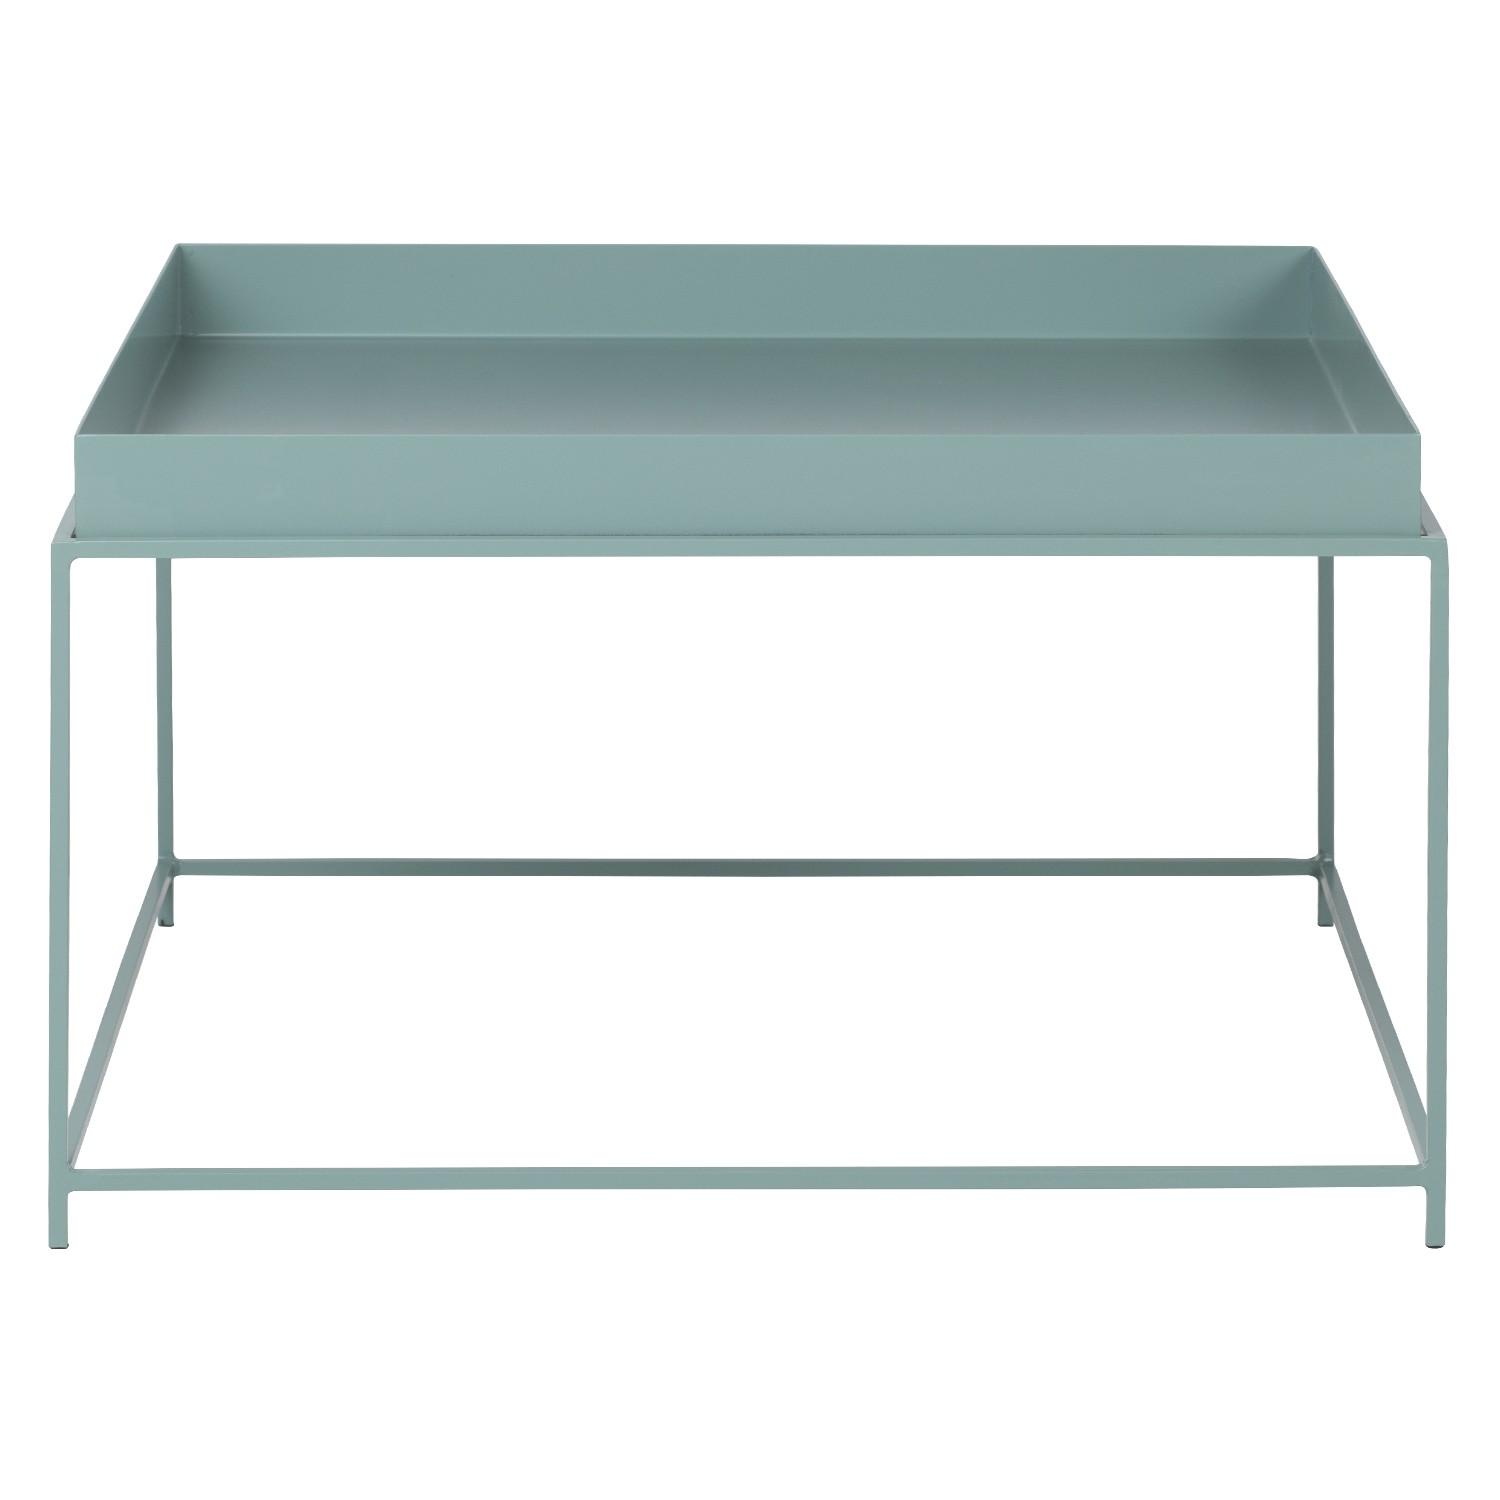 Table Basse Couleur Tables Basses Couleurs